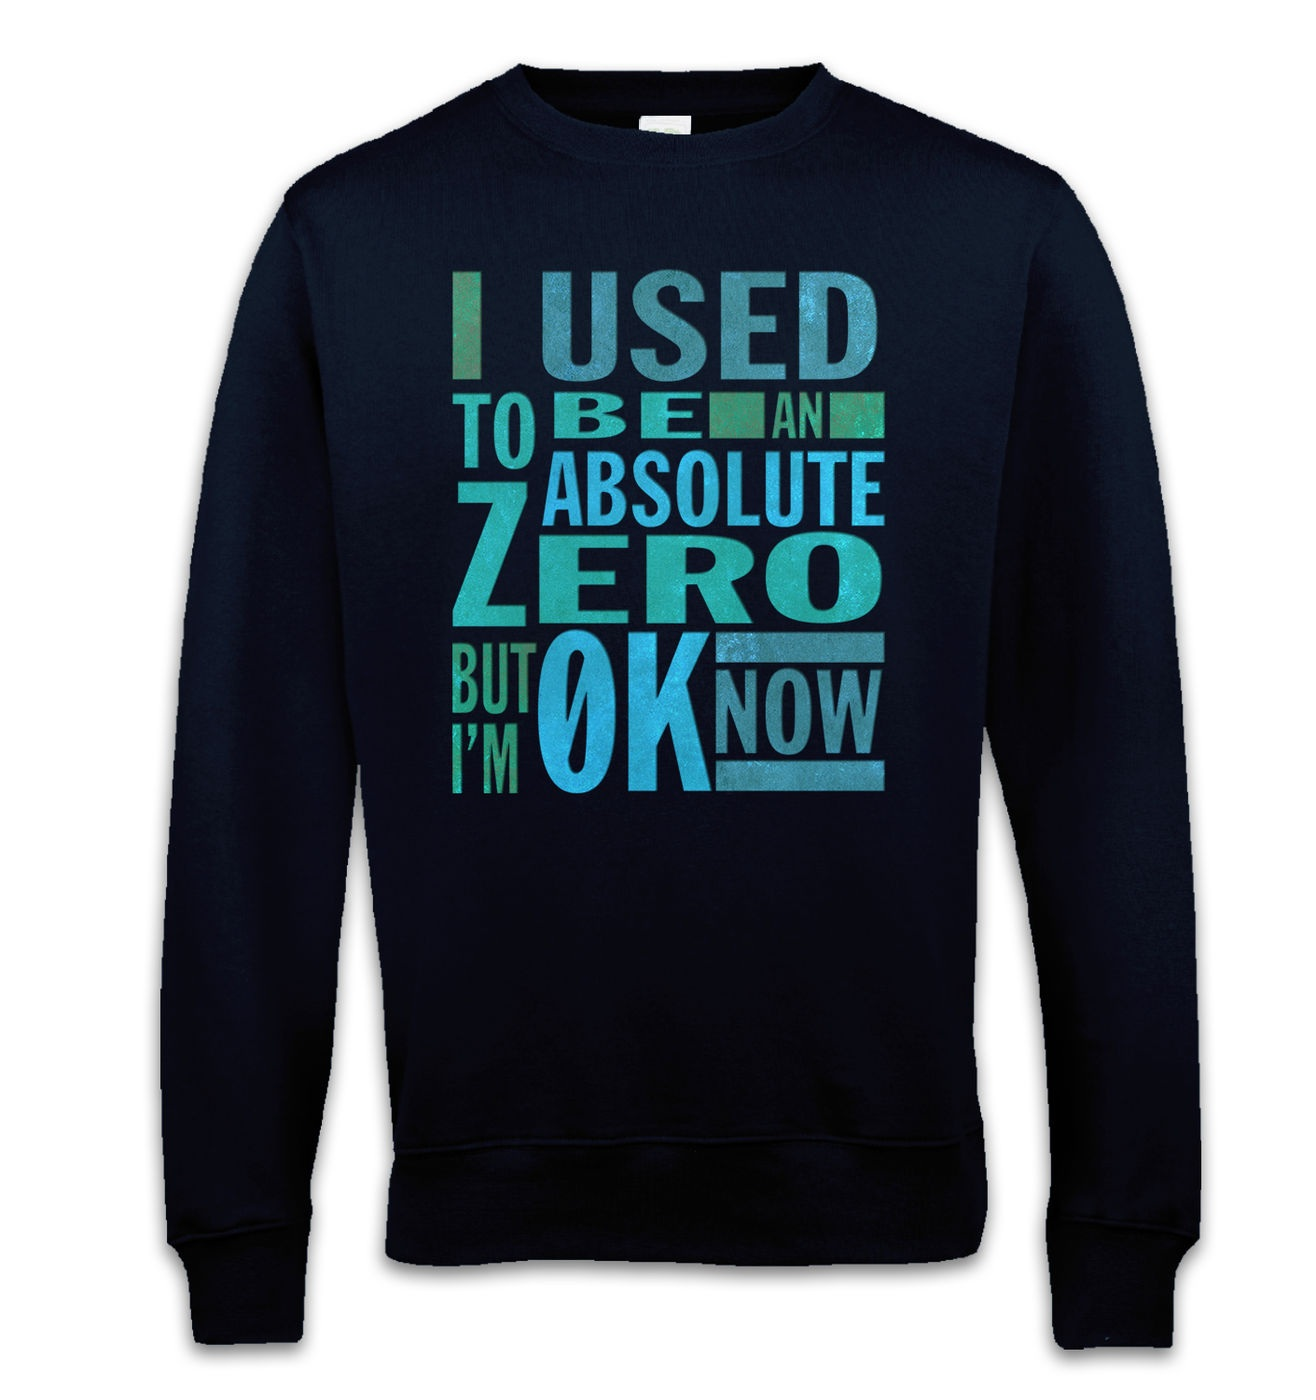 Absolute Zero 0K Now sweatshirt - funny science slogan sweater